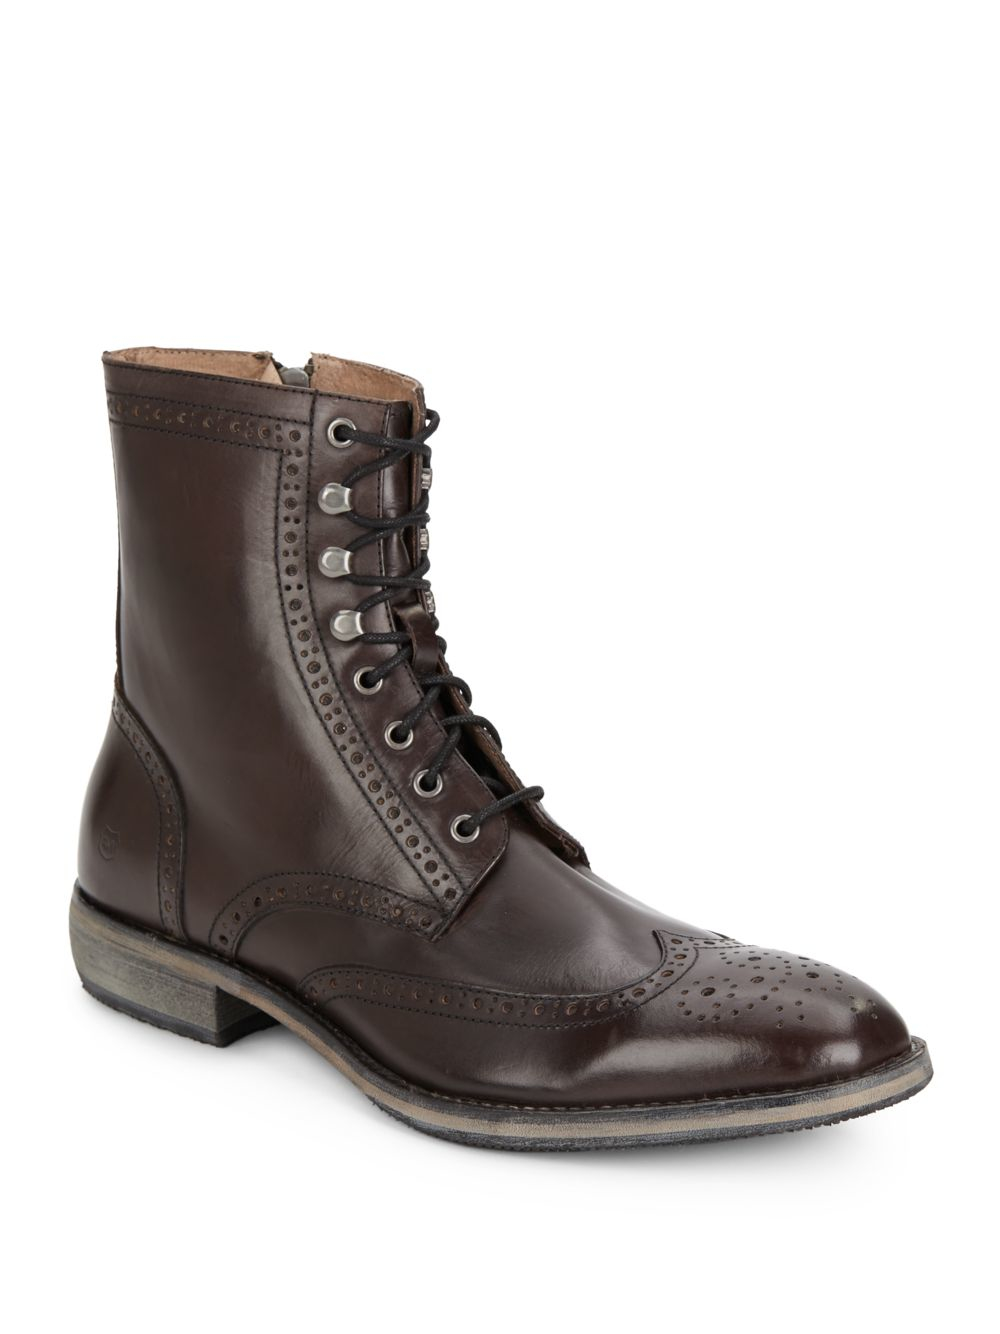 andrew marc hillcrest leather brogue wingtip ankle boots